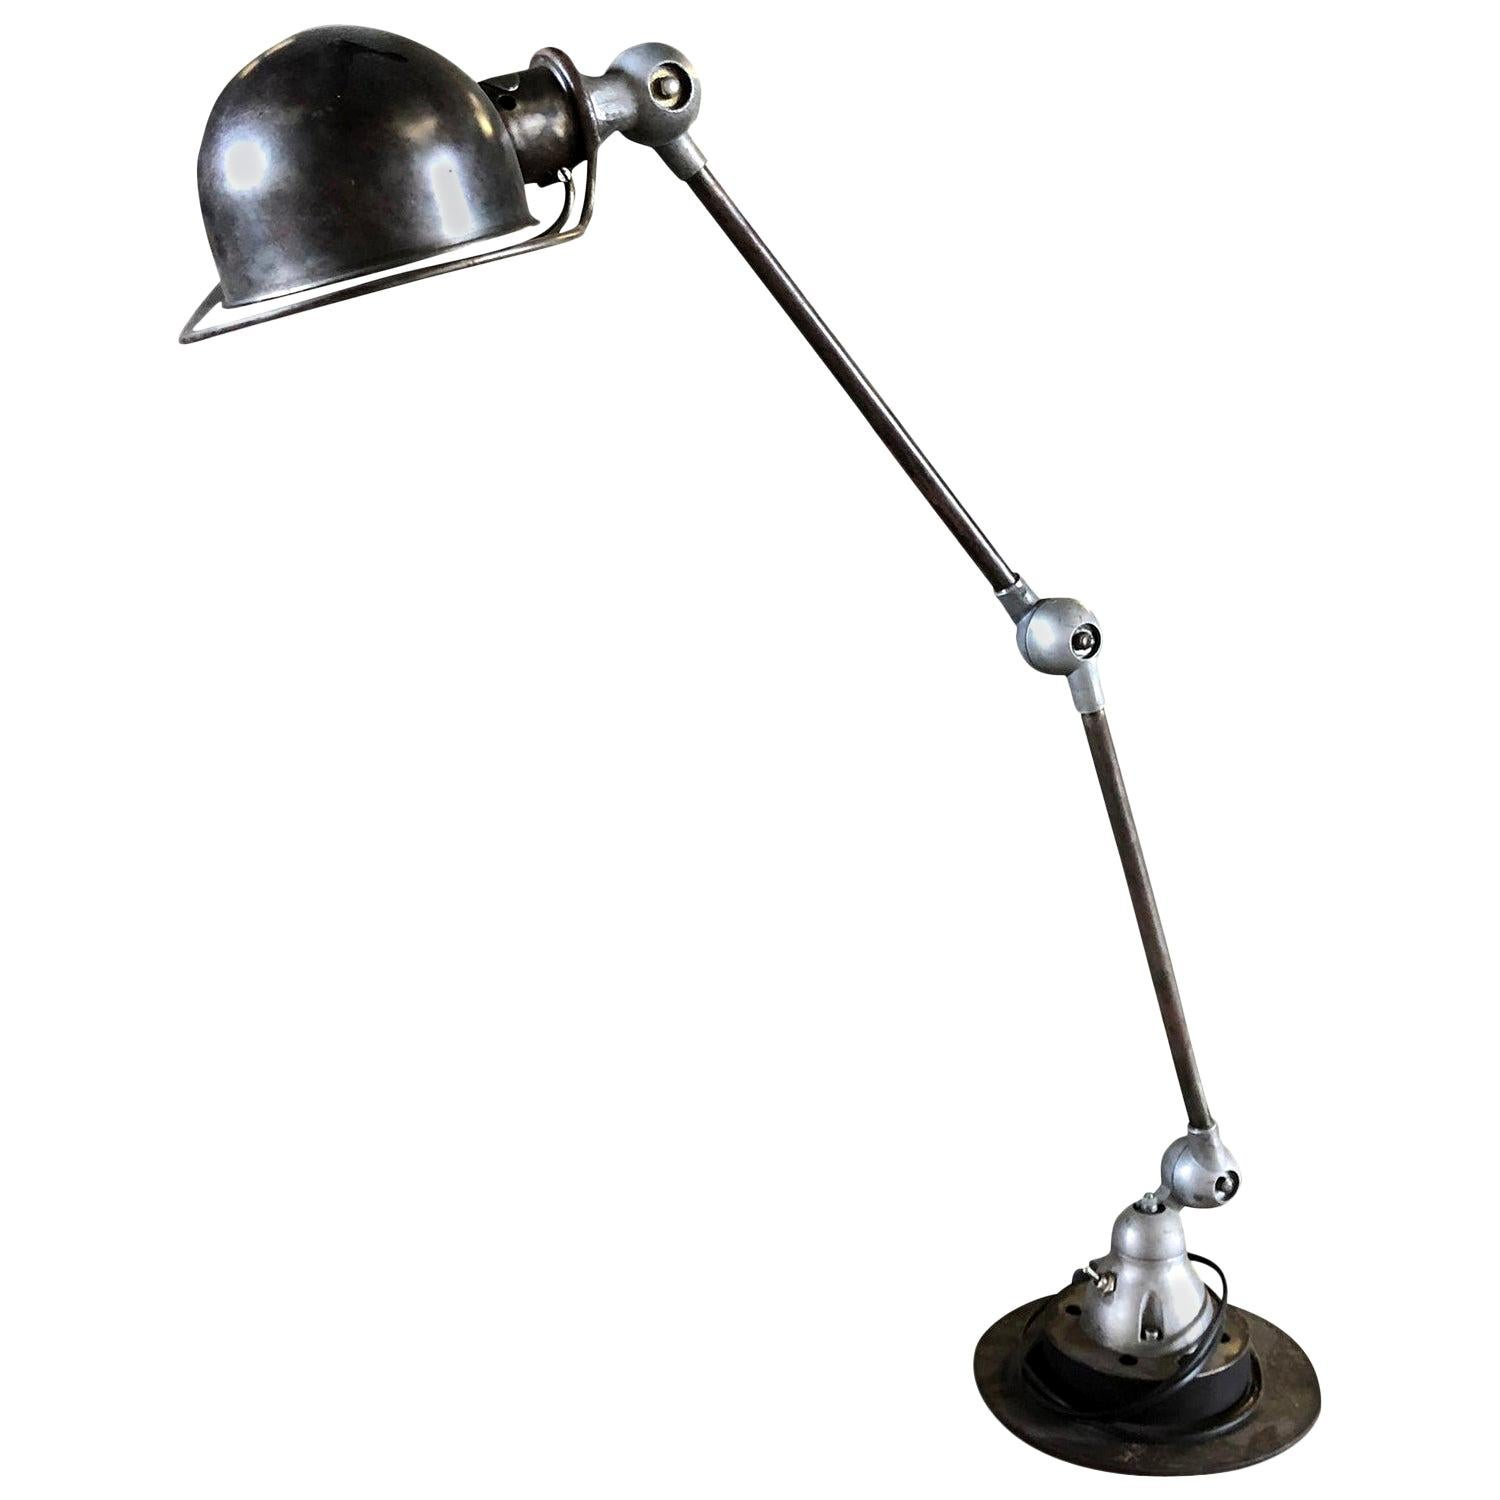 20th Century French Industrial Desk Lamp in the Style of Jean Louis Domecq